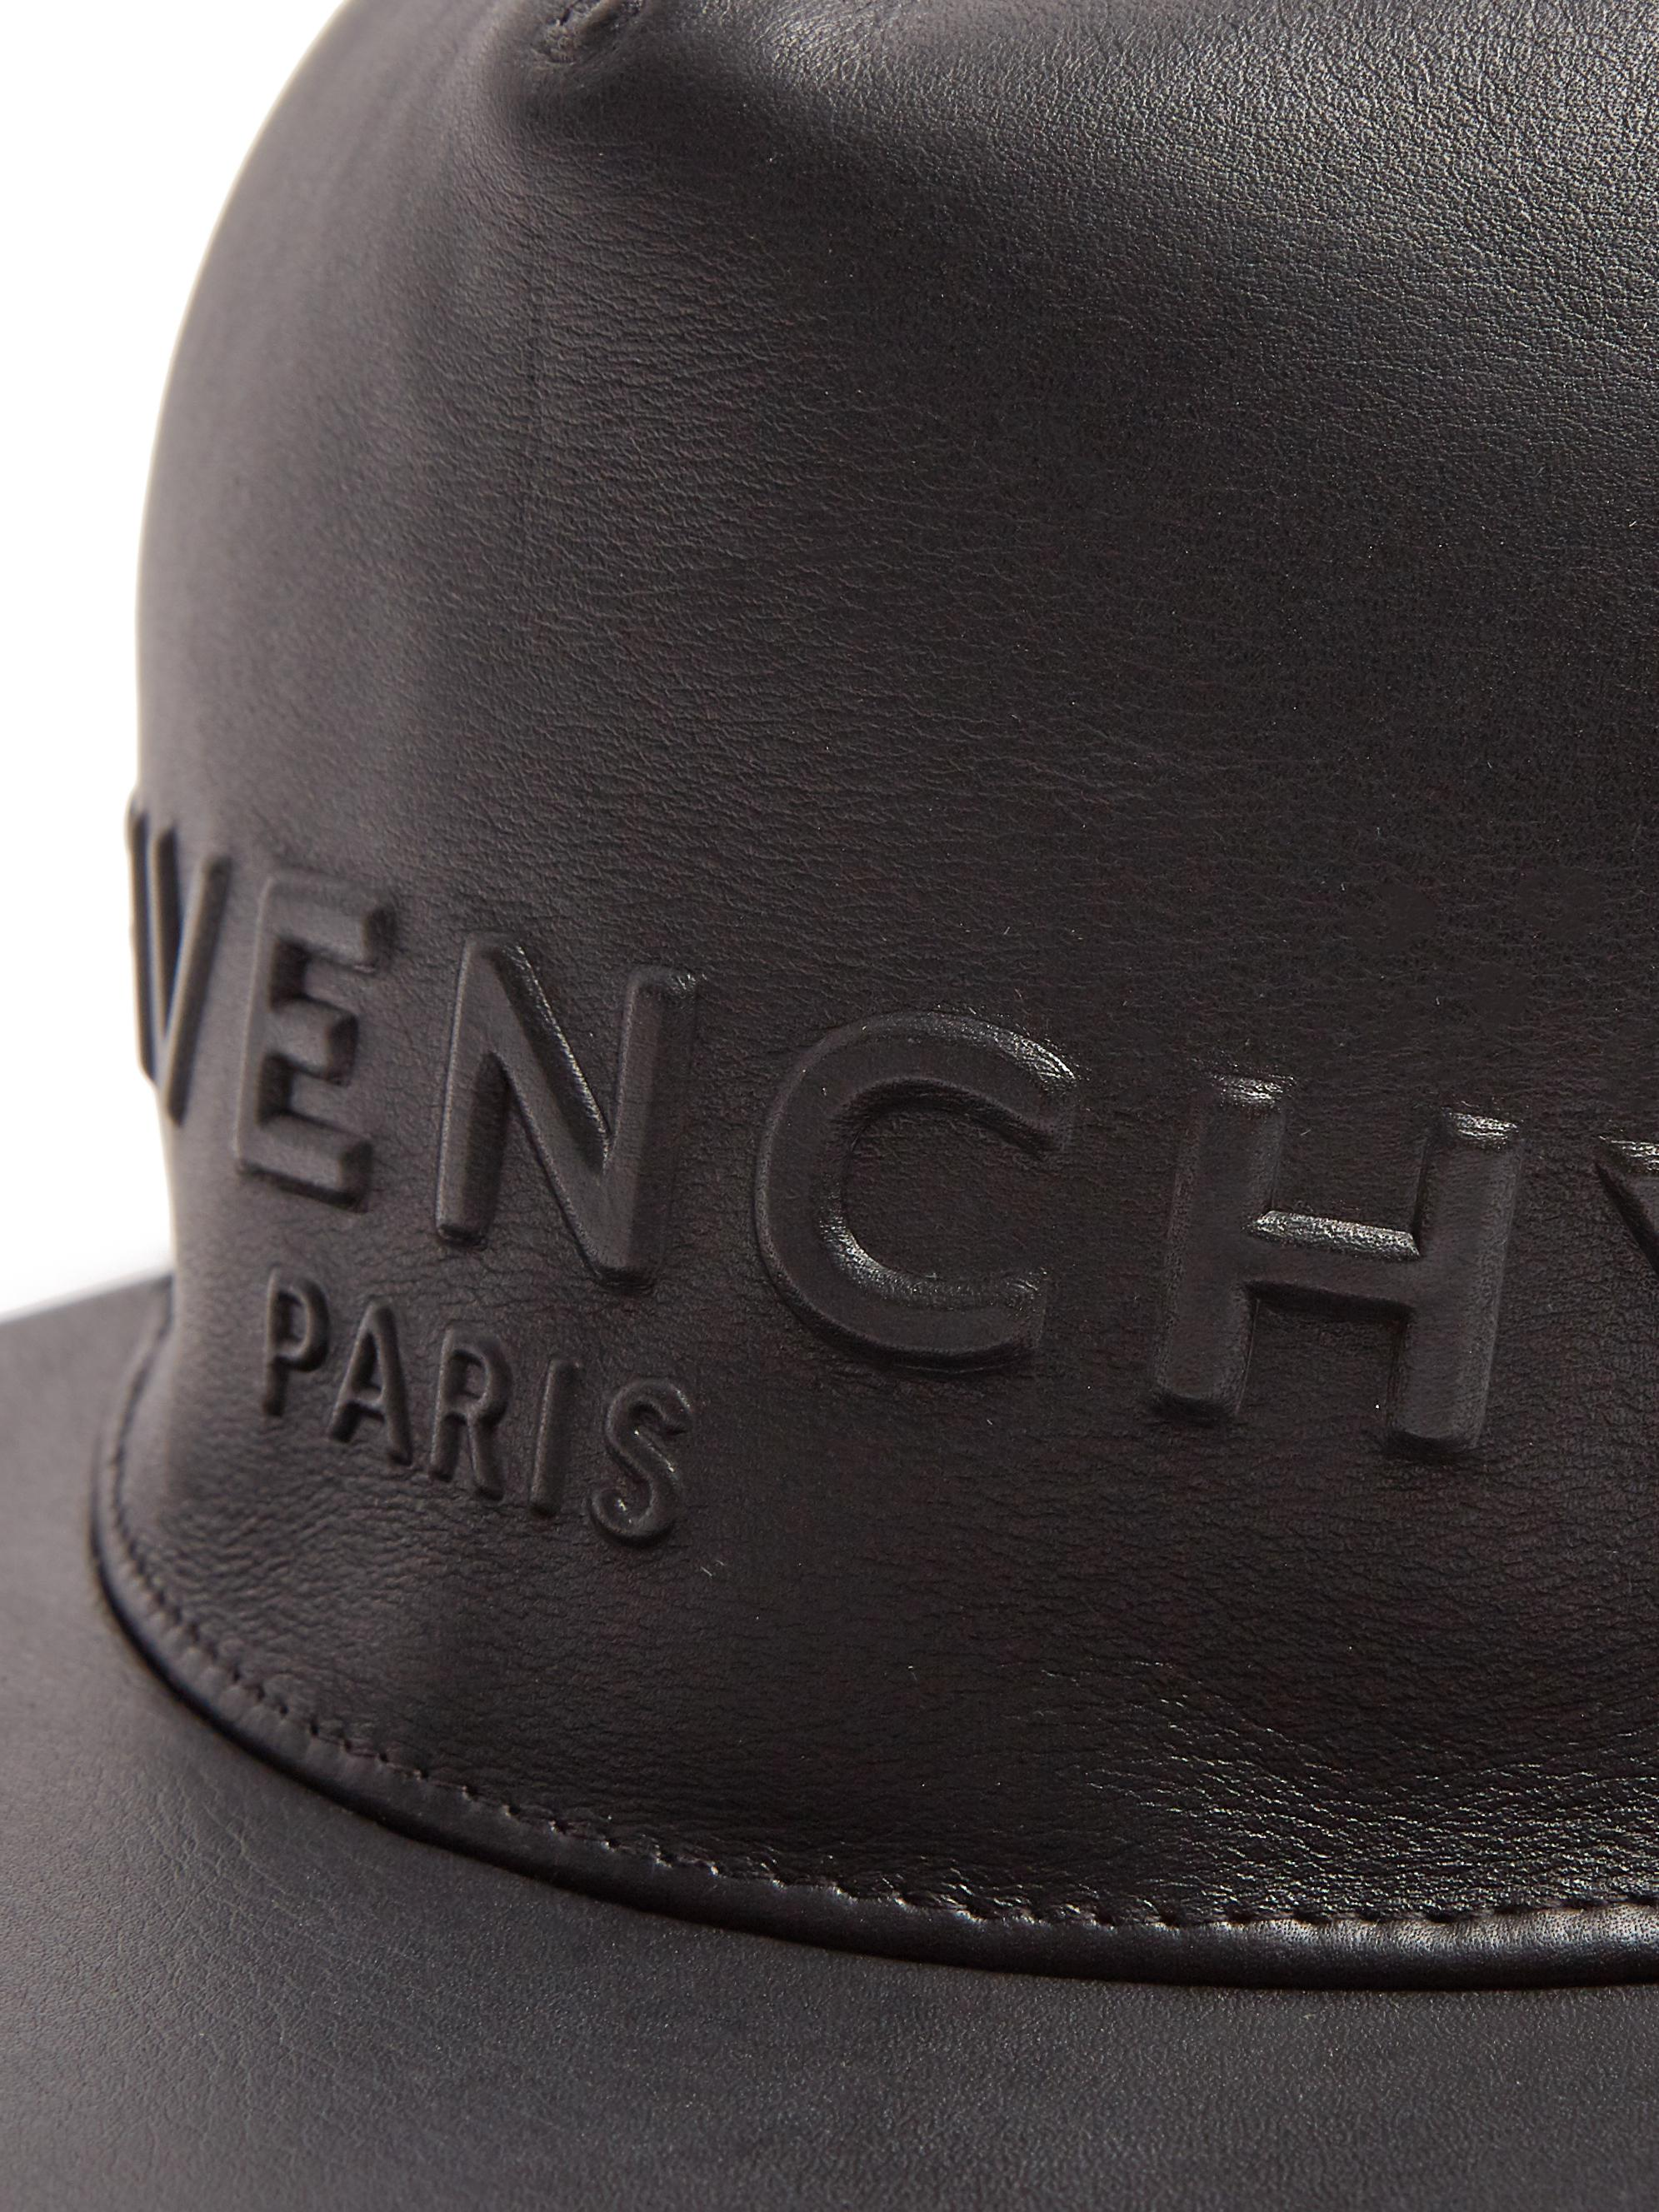 Lyst - Givenchy Logo-embossed Leather Cap in Black for Men 4546be3c7f5